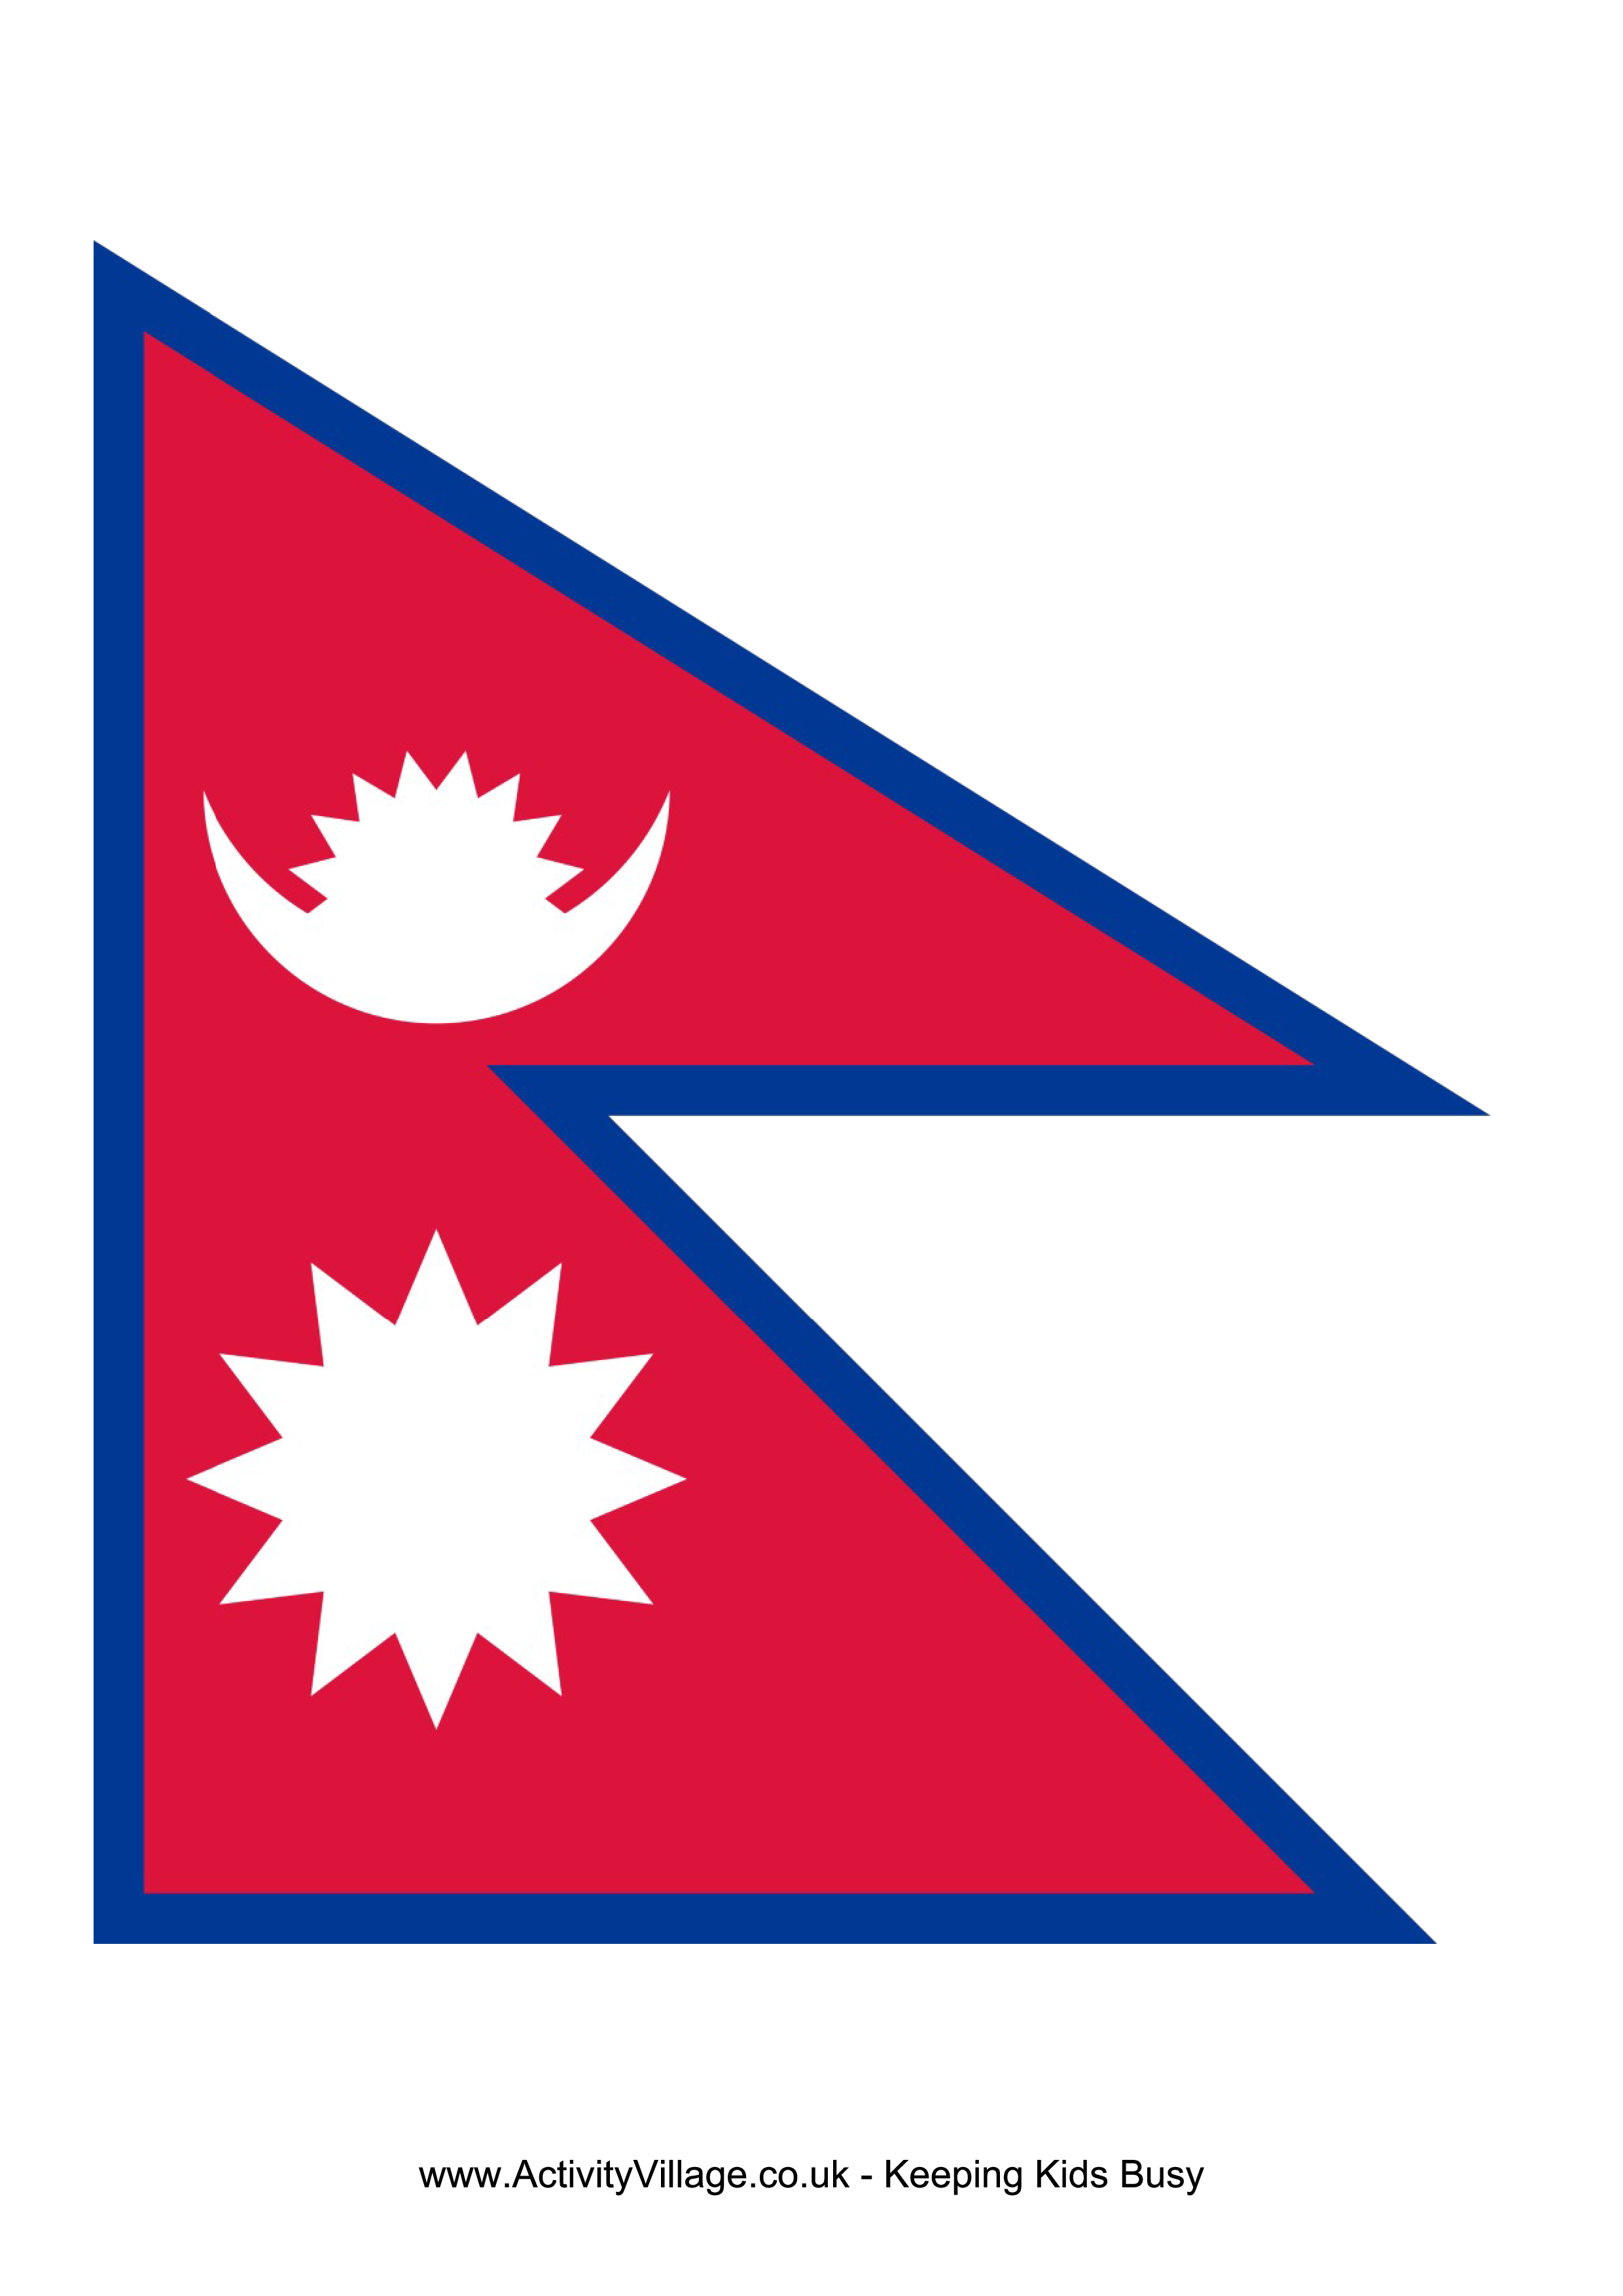 Nepal Flag Download This Free Printable Nepal Template A4 Flag A5 Flag 8 And 21 Flags On One A4page Easy To Use In Your Own Nepal Flag Flag Printable Flag